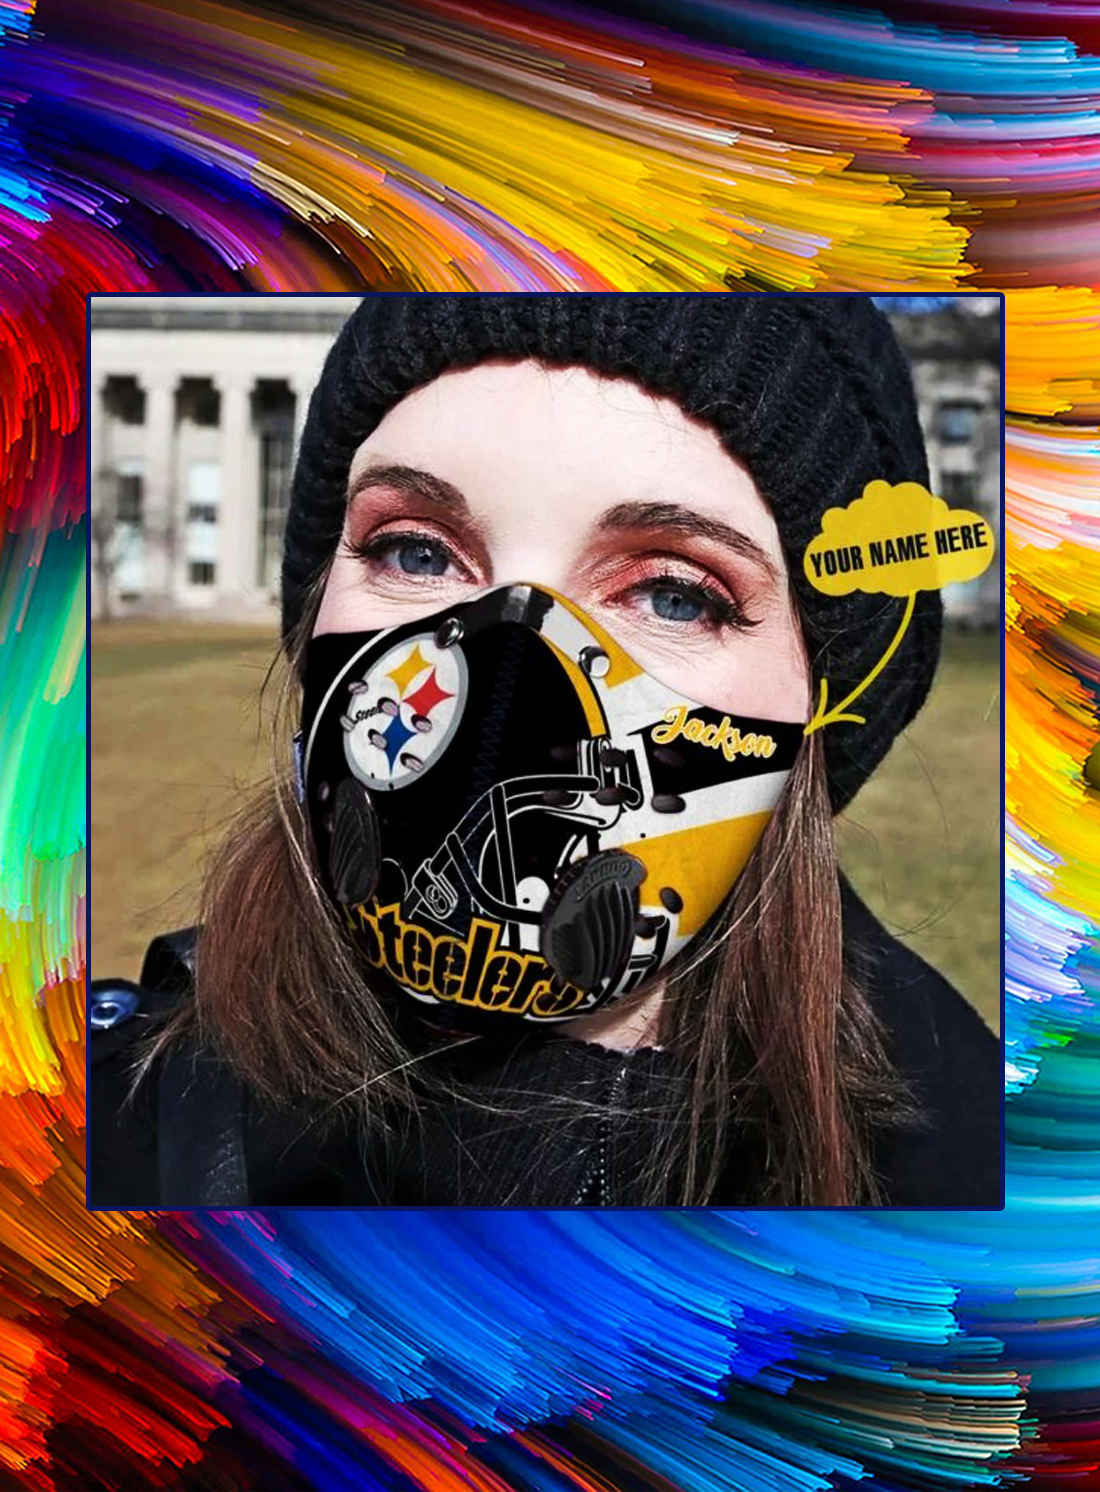 Pittsburgh steelers personalized custom name filter face mask - Picture 1